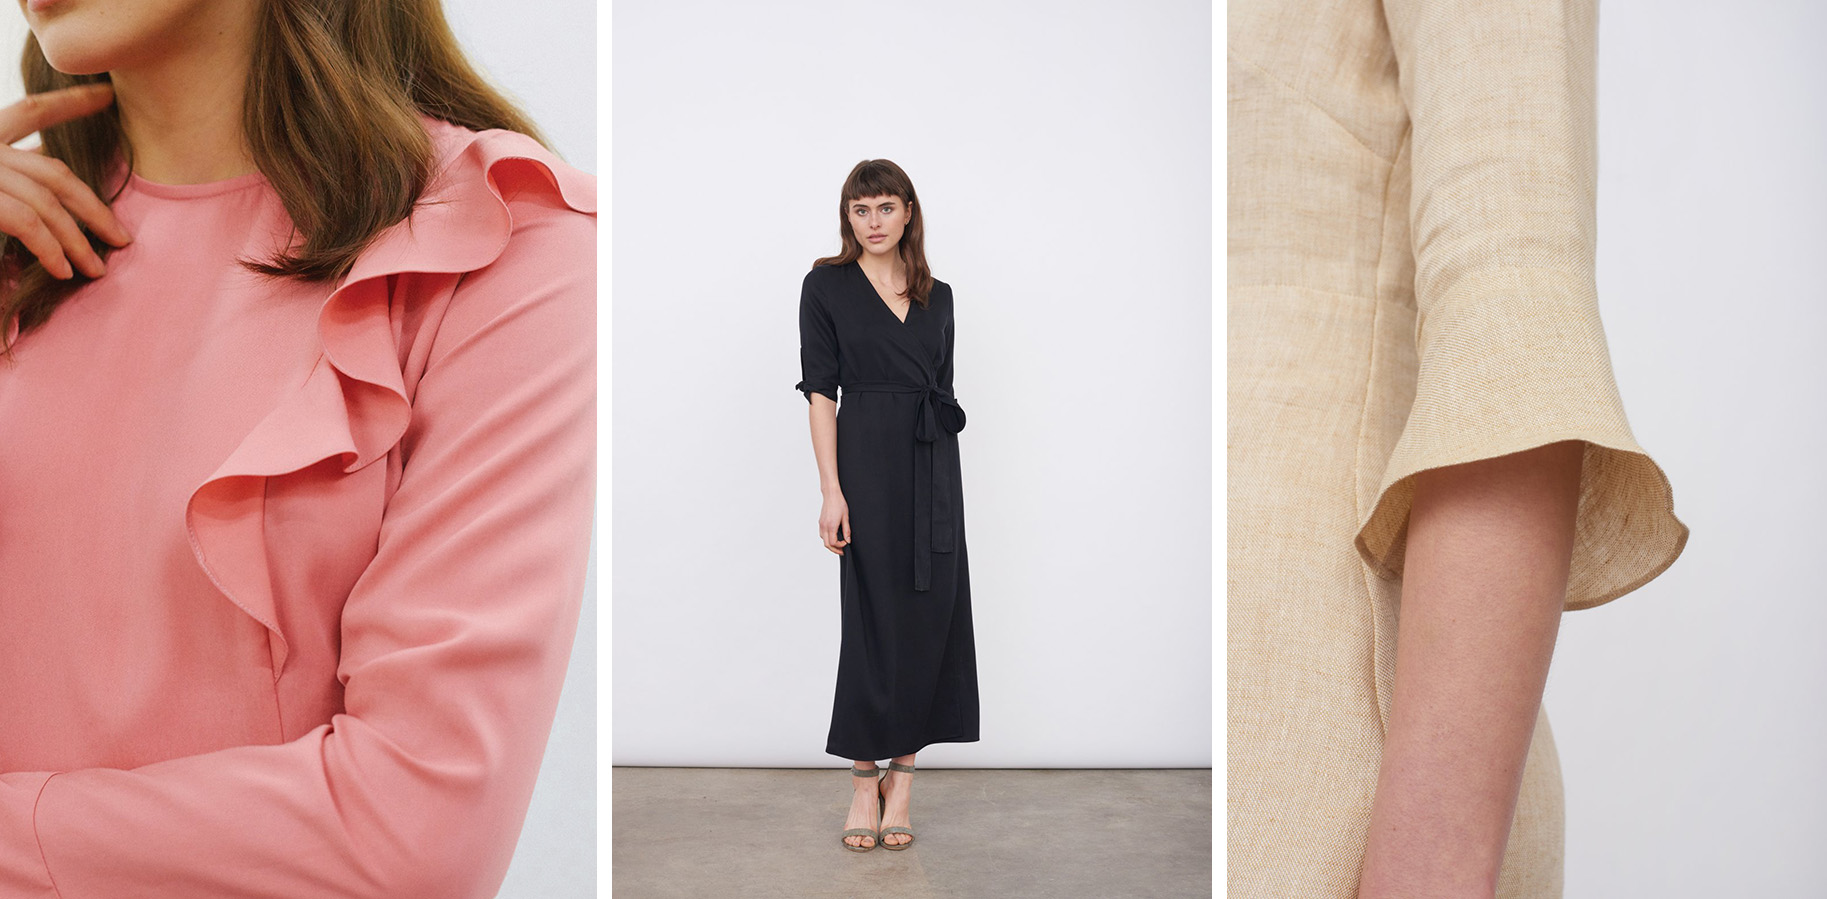 From left to right: the Tencel Ruffle Dress, the Tencel Wrap Dress, and the Linen Day Dress.